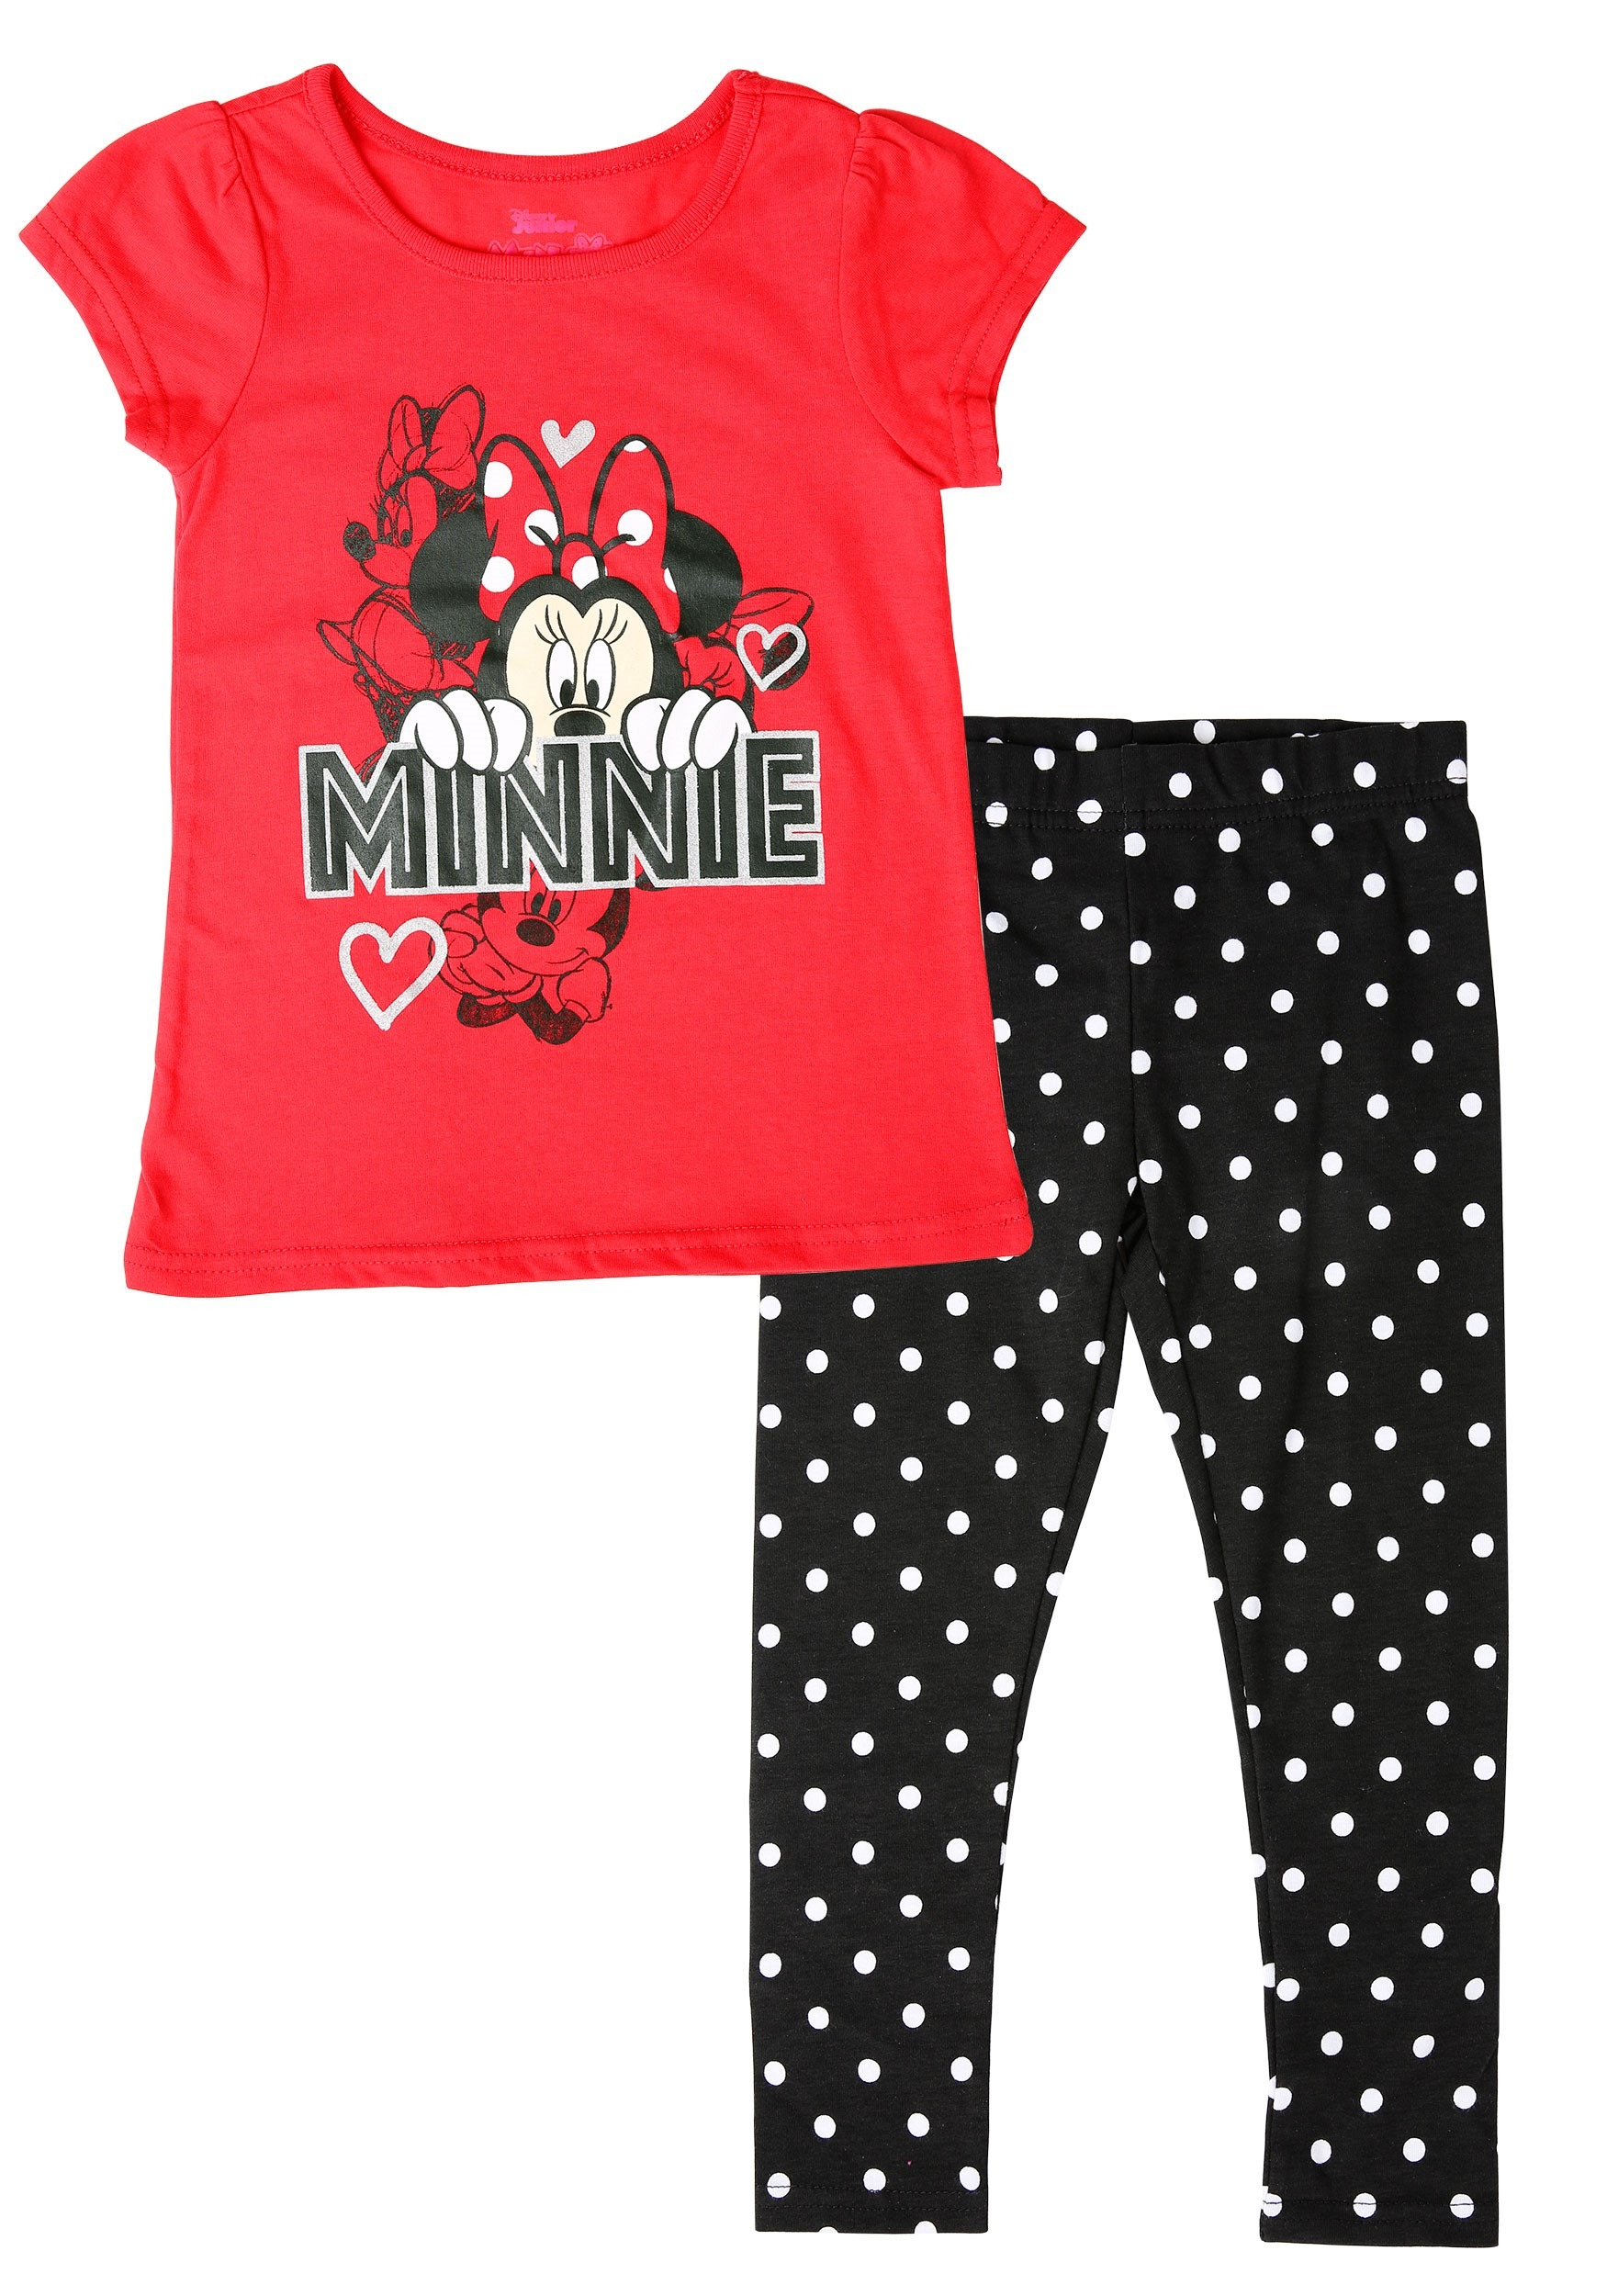 NEW TODDLER DISNEY MINNIE MOUSE OUTFIT RED SWEET LIKE SUGAR SIZE 2T 3T 2 PIECE